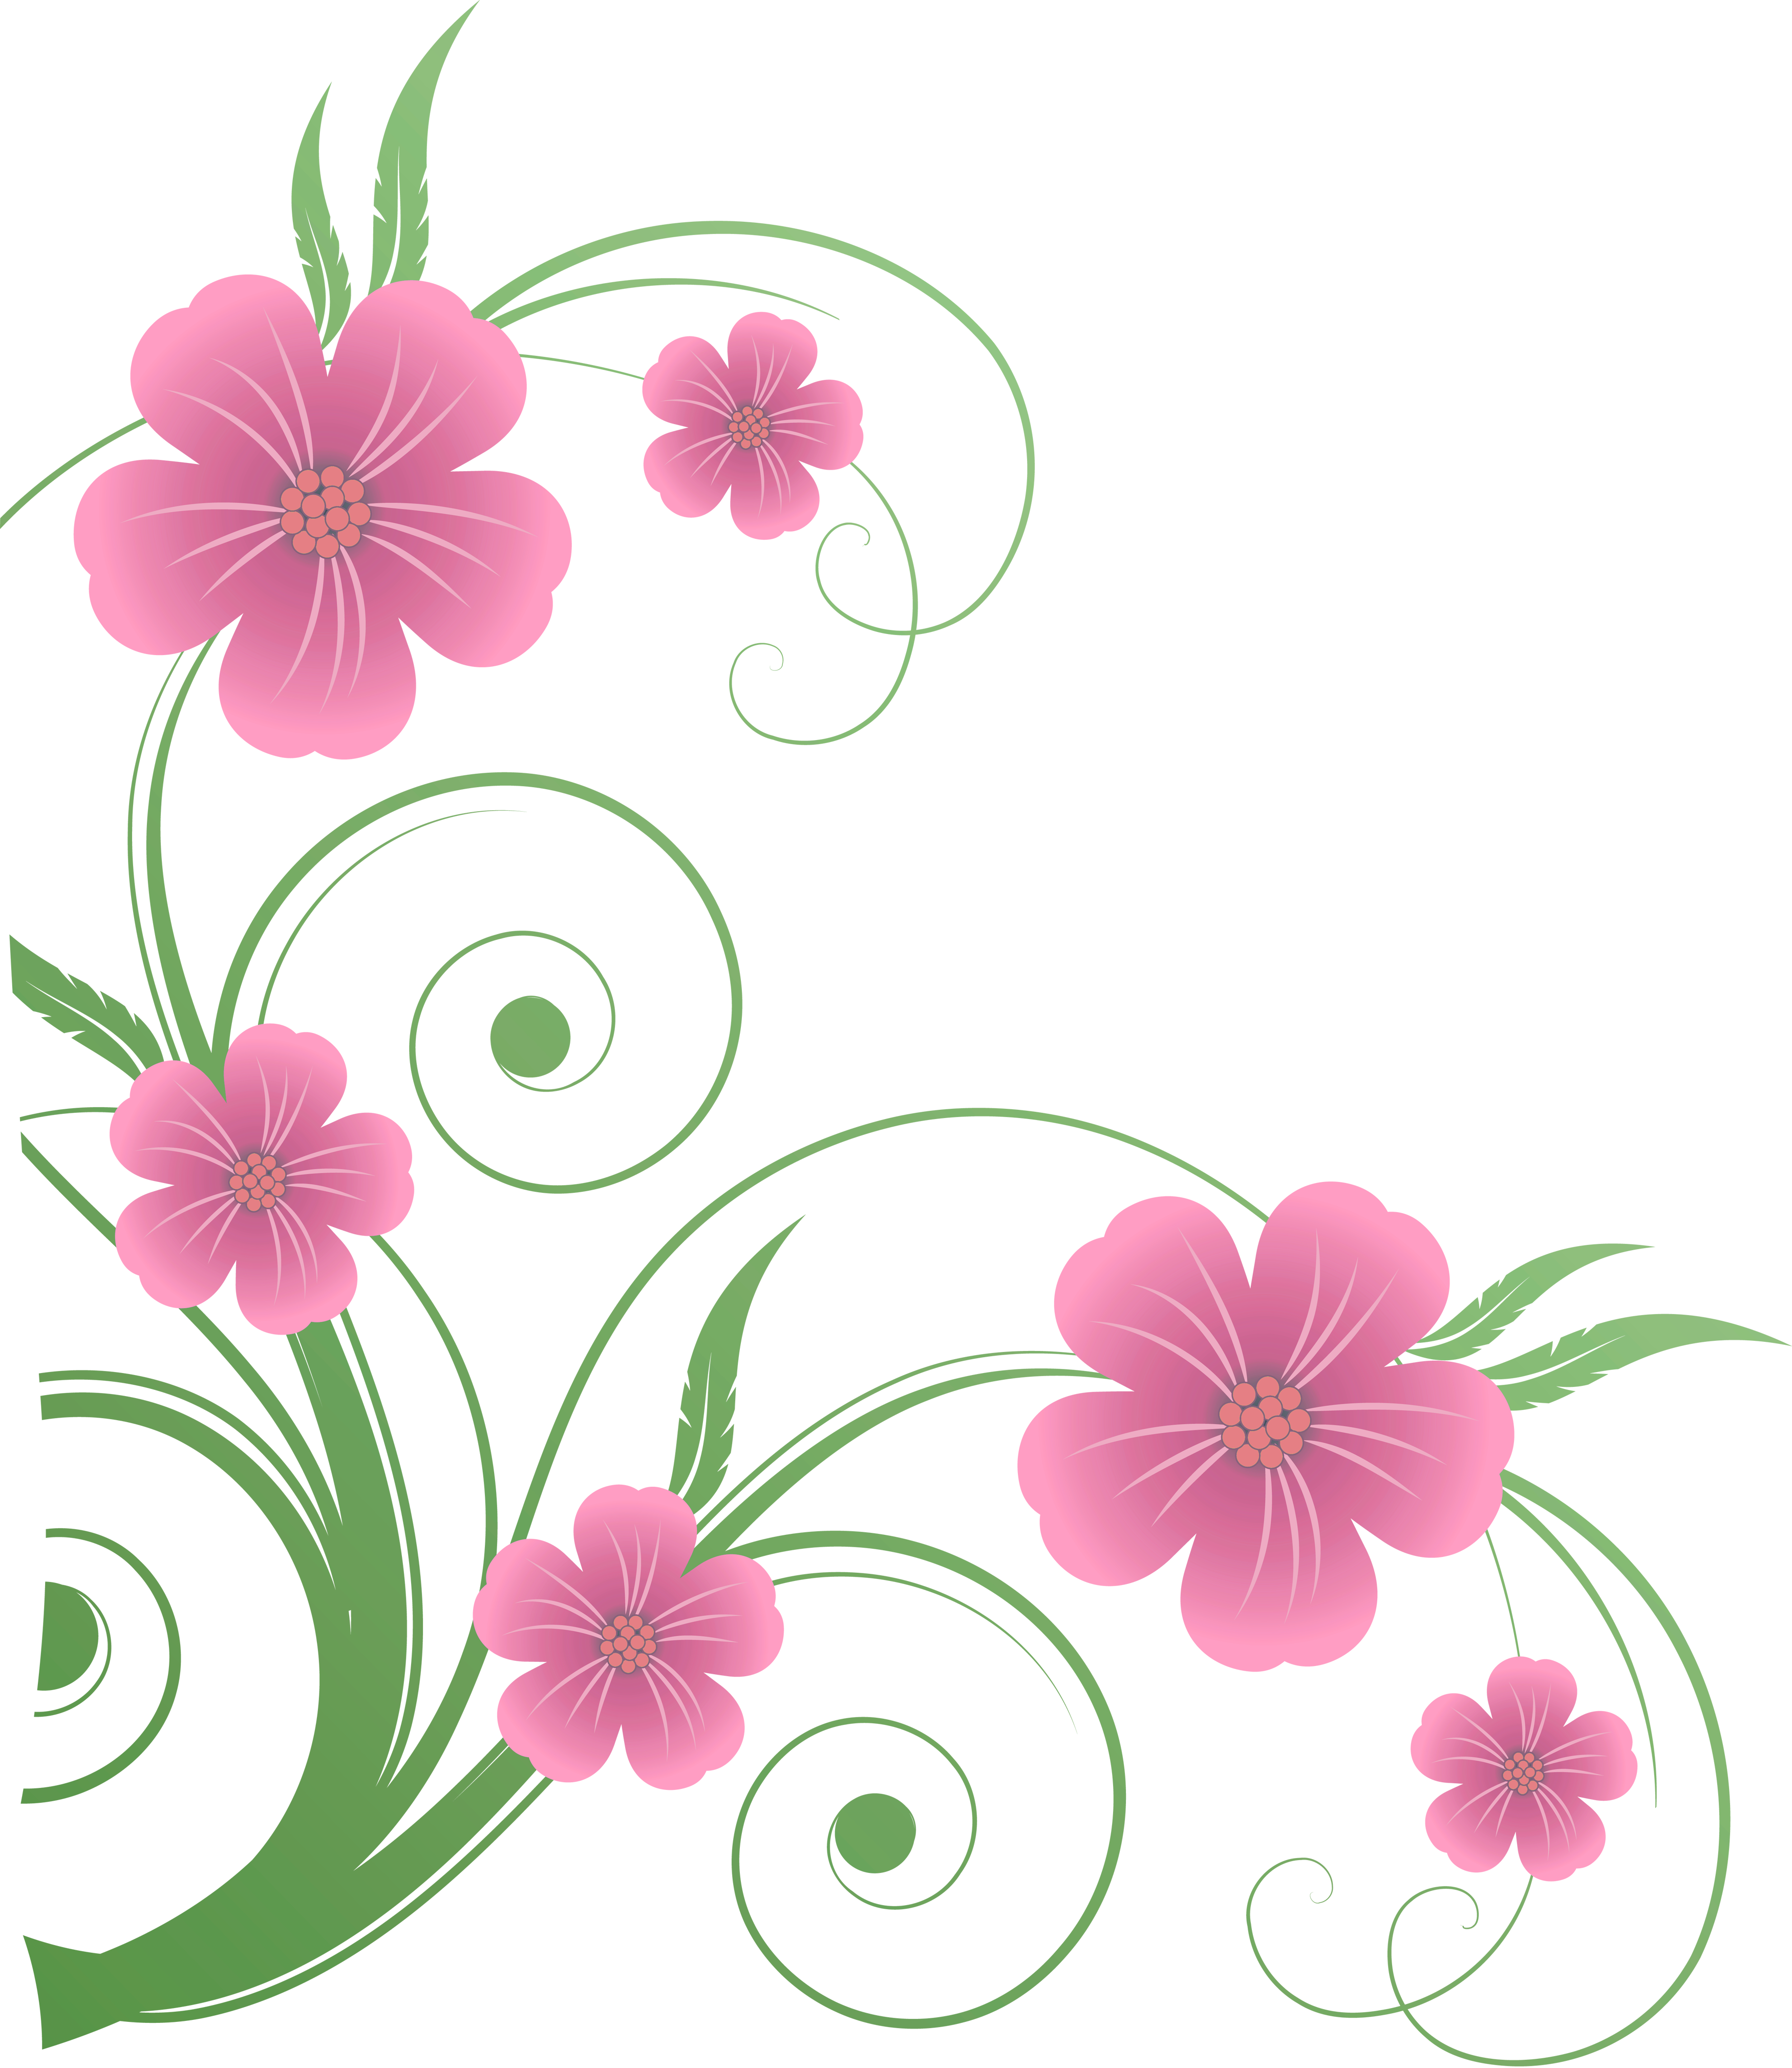 Flower png clipart. Flowers decorative element gallery